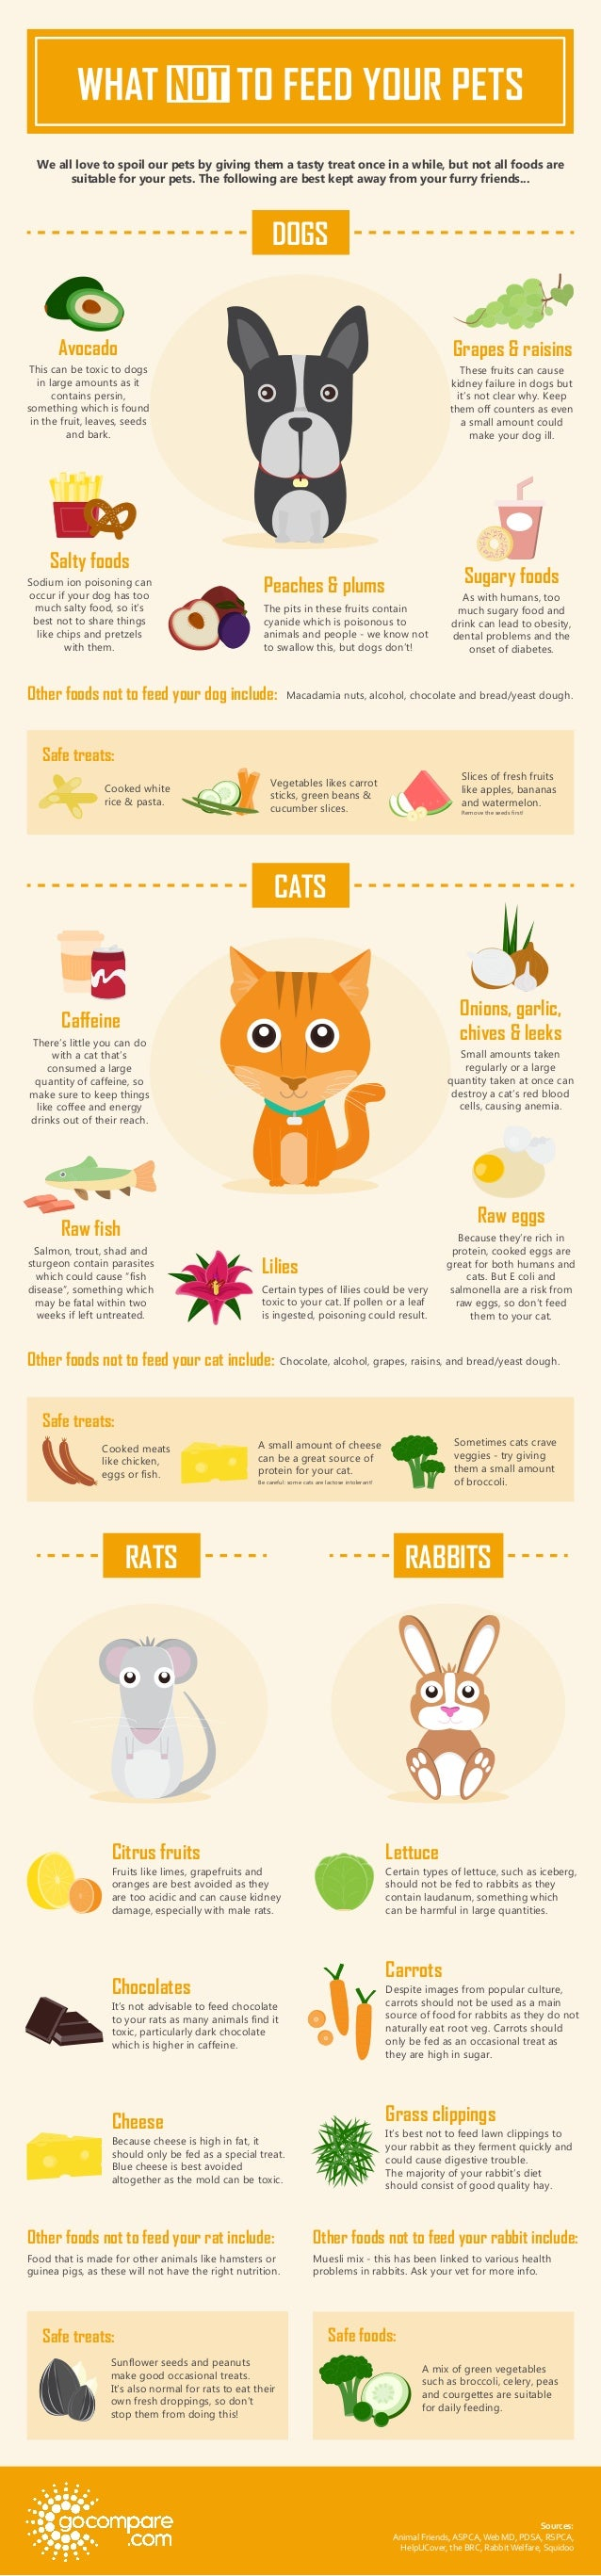 What Not to Feed Your Pets [Infographic]